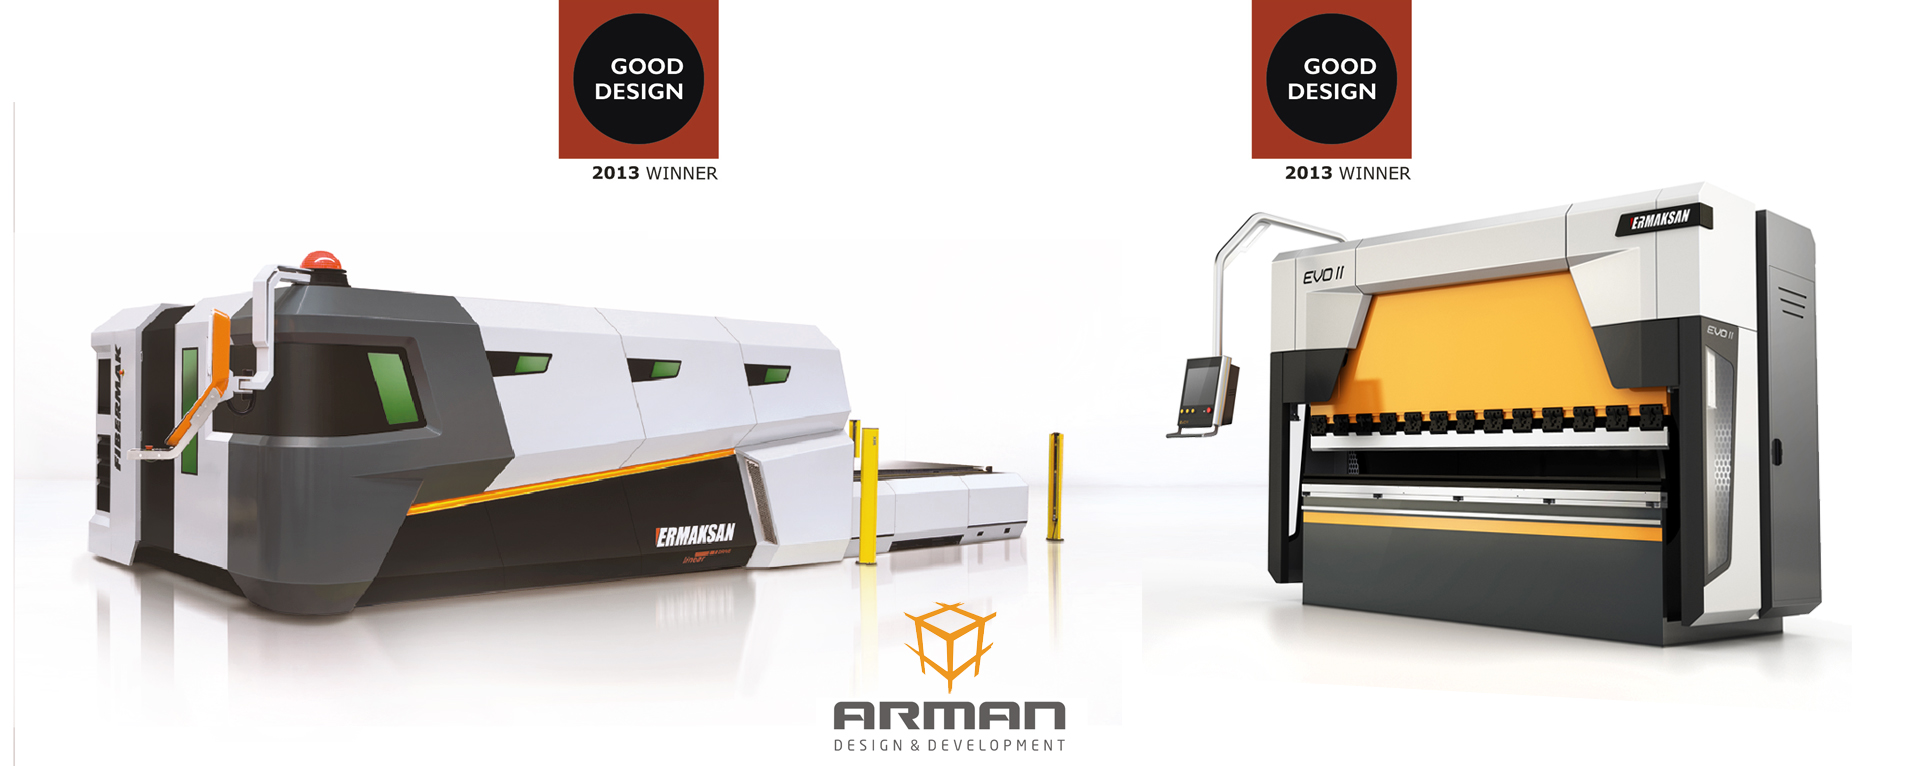 Arman Tasarım – Good Design Award 2013